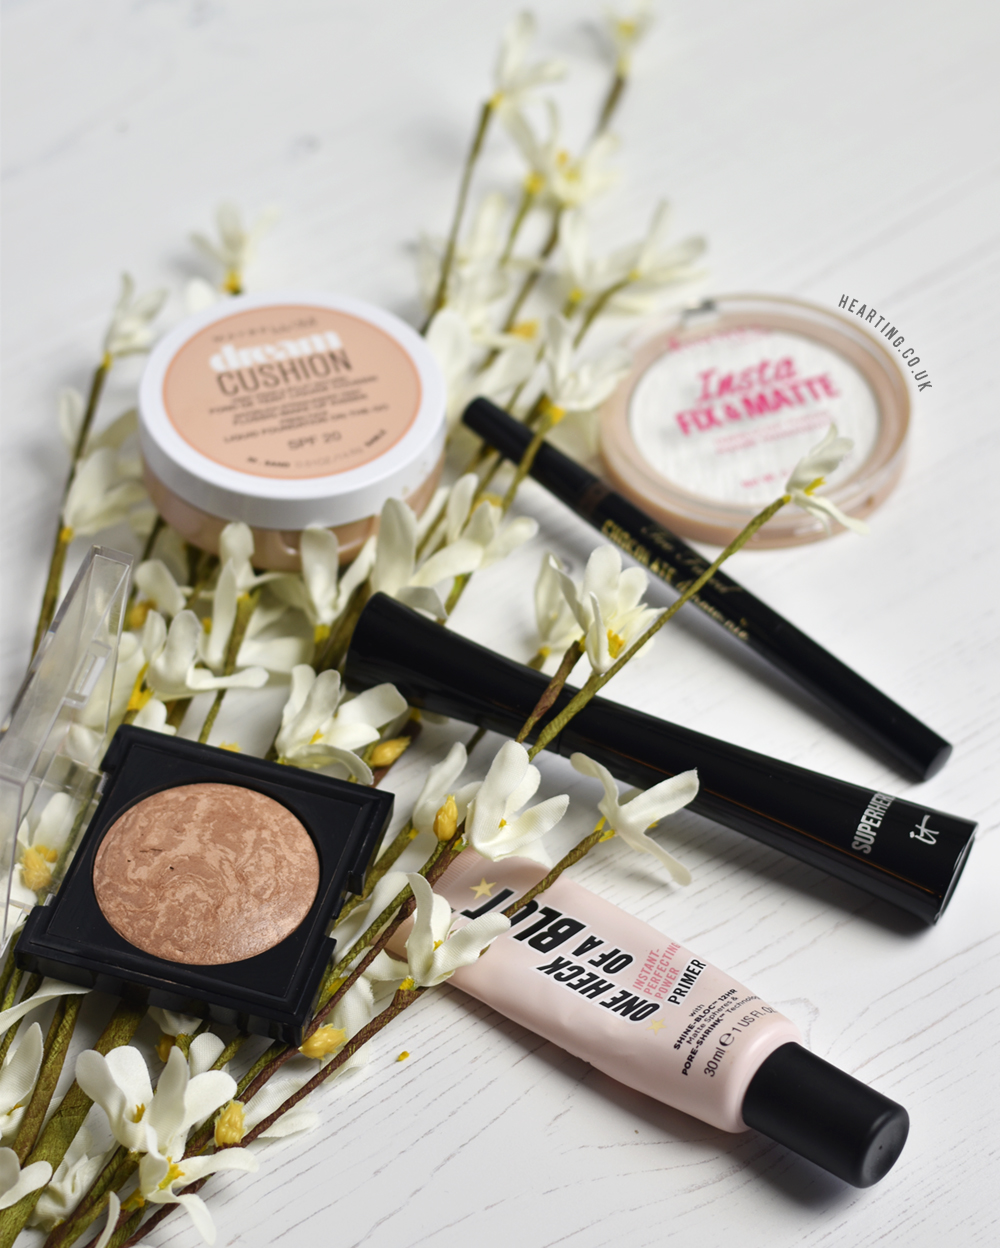 My Current Everyday Makeup Favourites